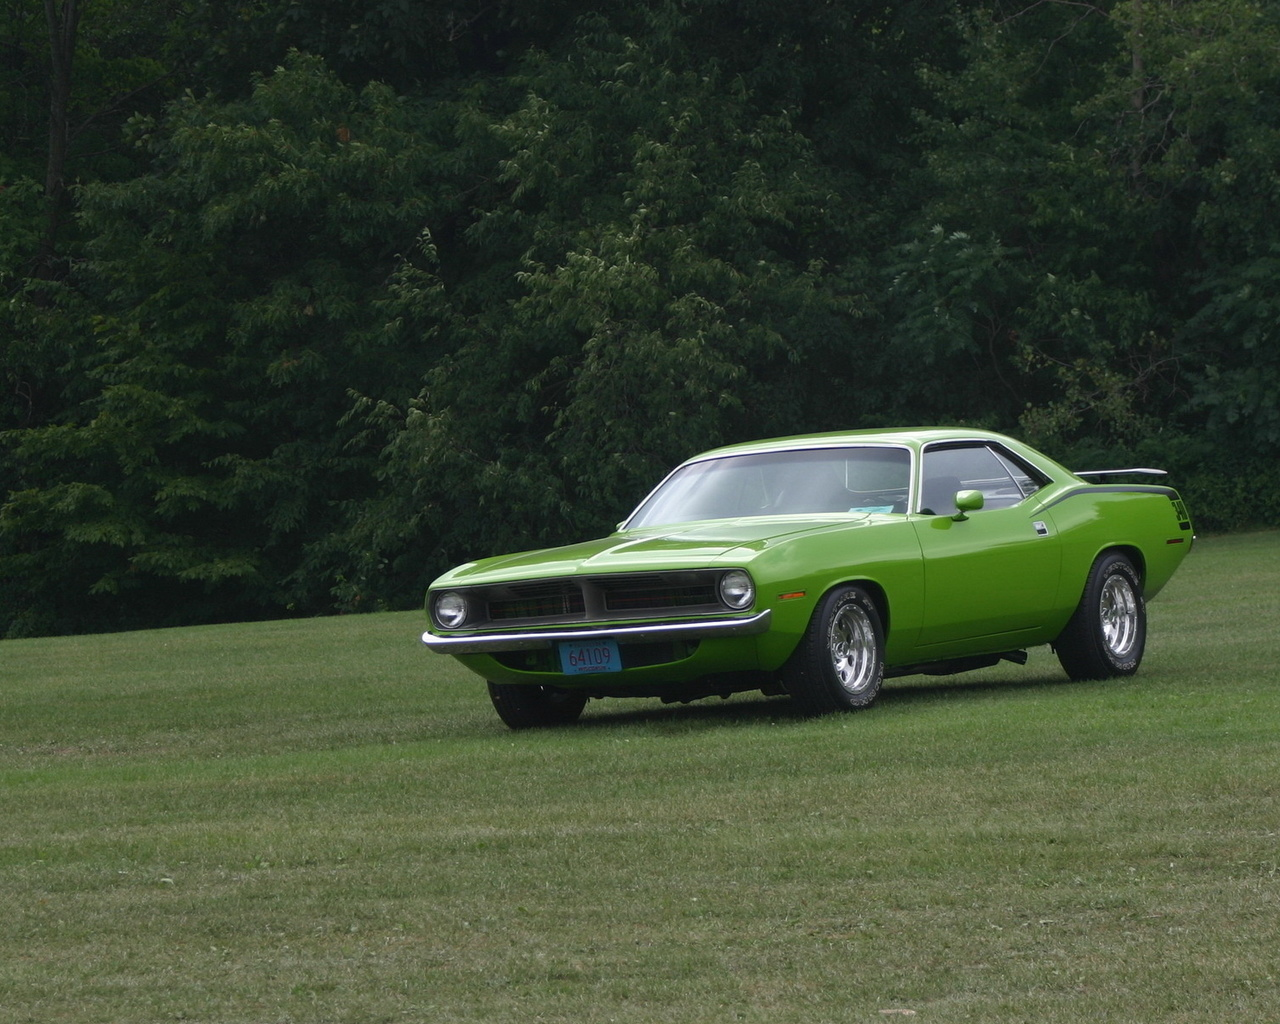 barracuda, muscle car, 340, Plymouth